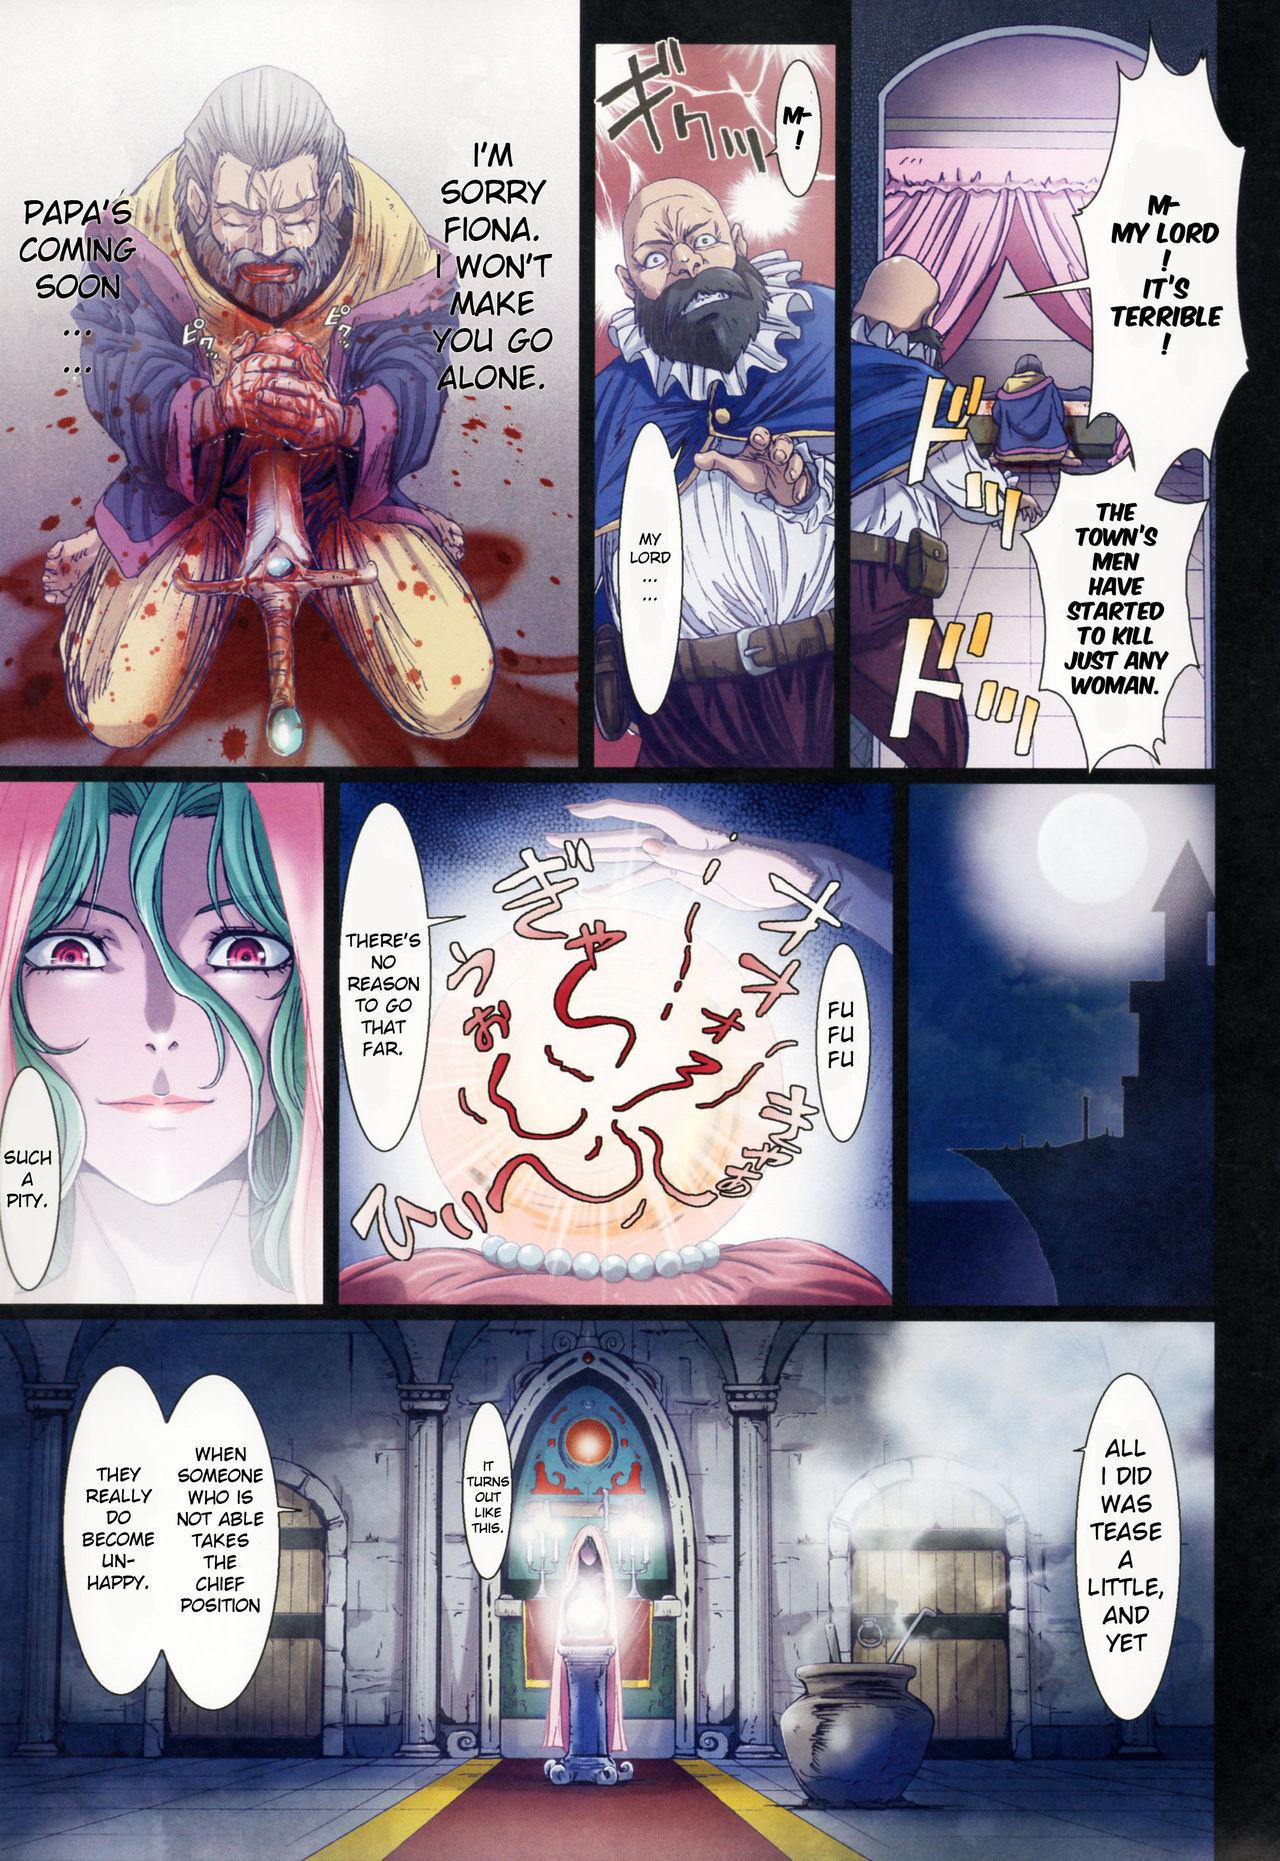 (C88) [STUDIO PAL (Nanno Koto)] Other Zone 5 ~Nishi no Majo~ | Other Zone 5 ~The Witch of the West~ (Wizard of Oz) [English] {Kenren} 16